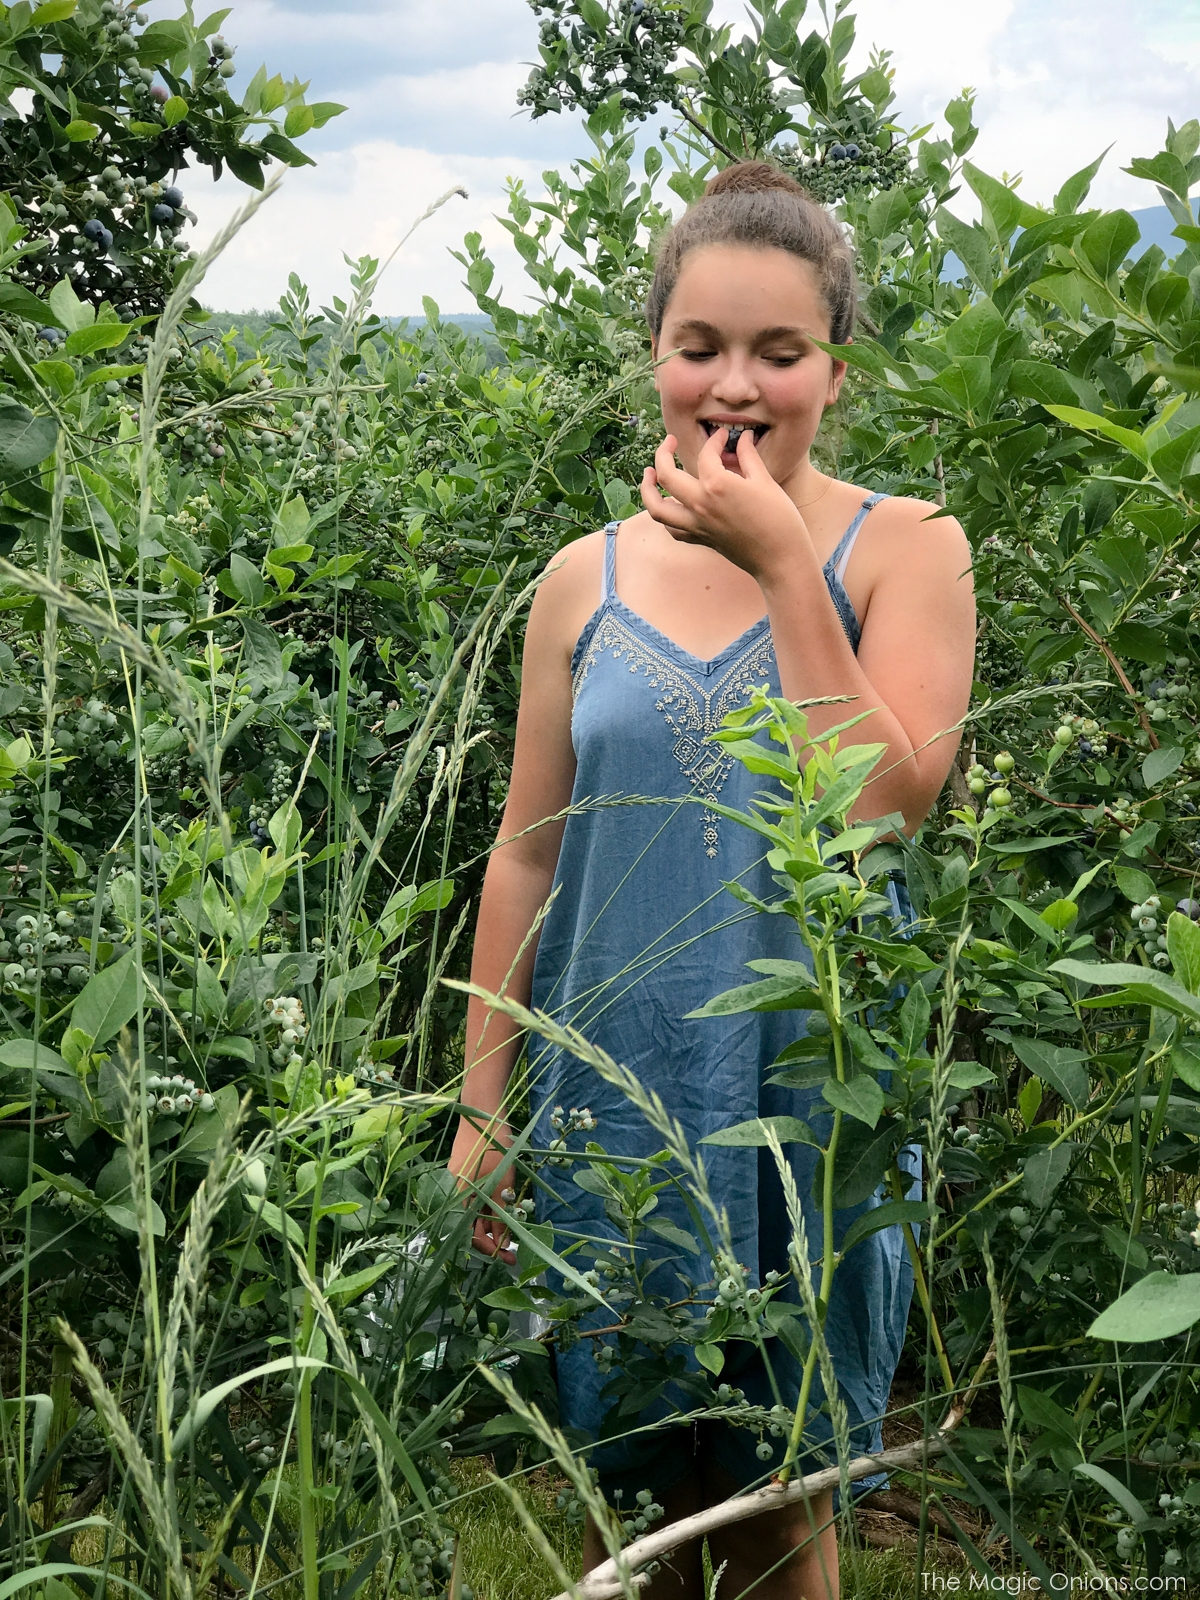 Picking Blueberries at Monadnock Berries, New Hampshire 11